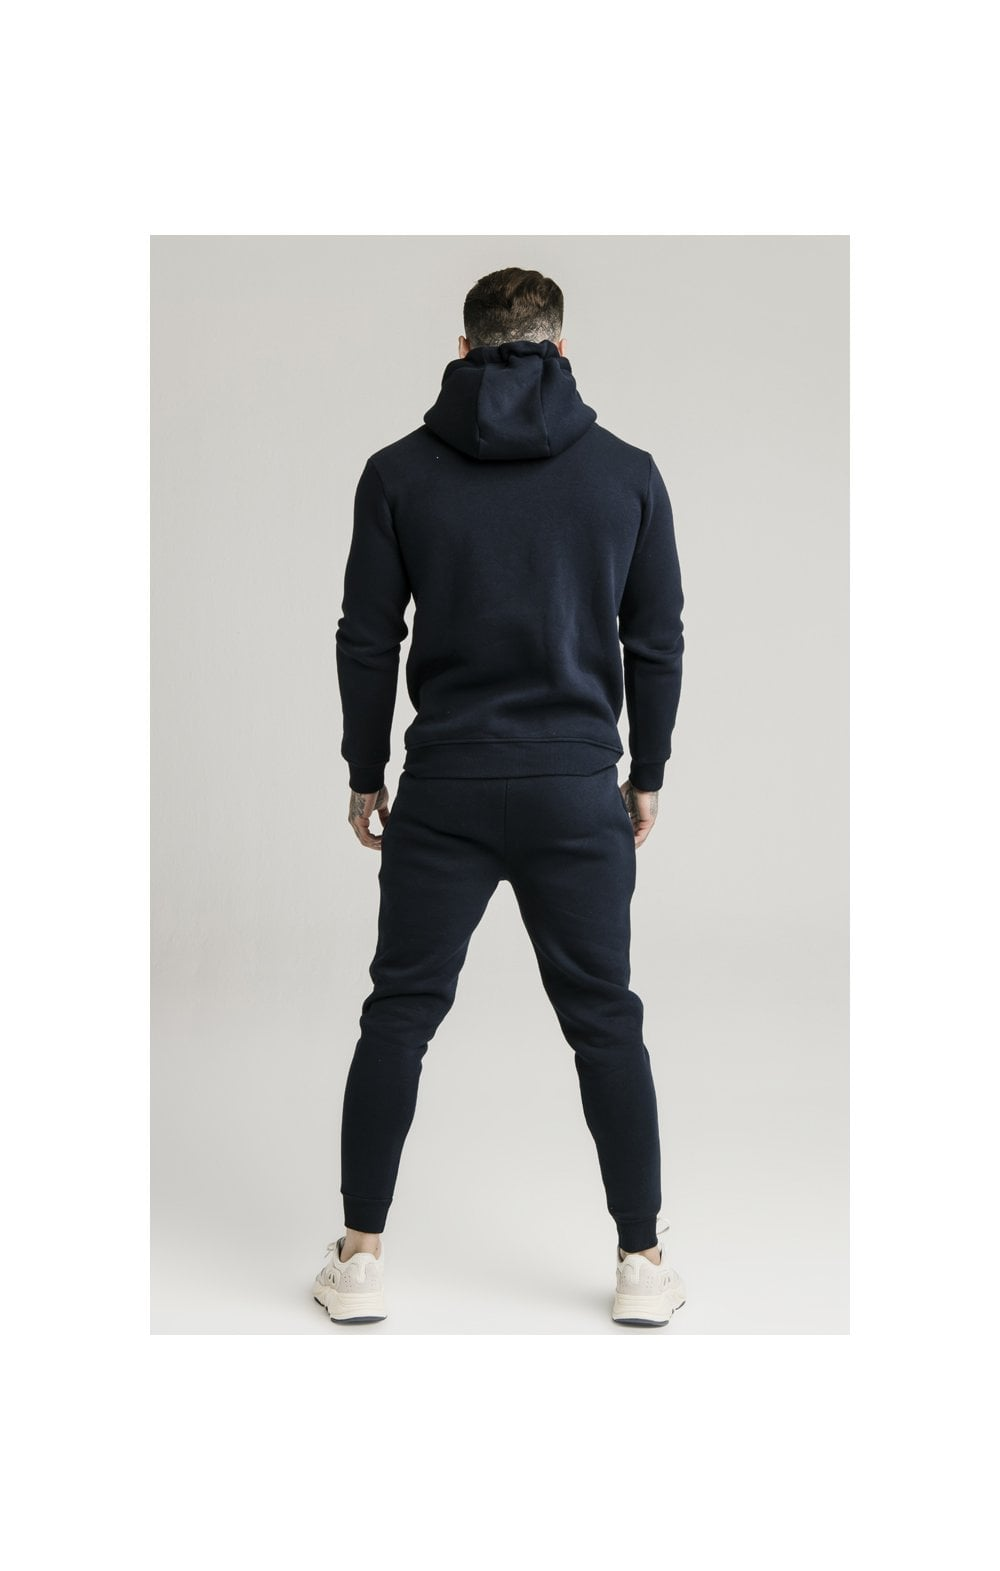 SikSilk Muscle Fit Jogger – Navy (6)